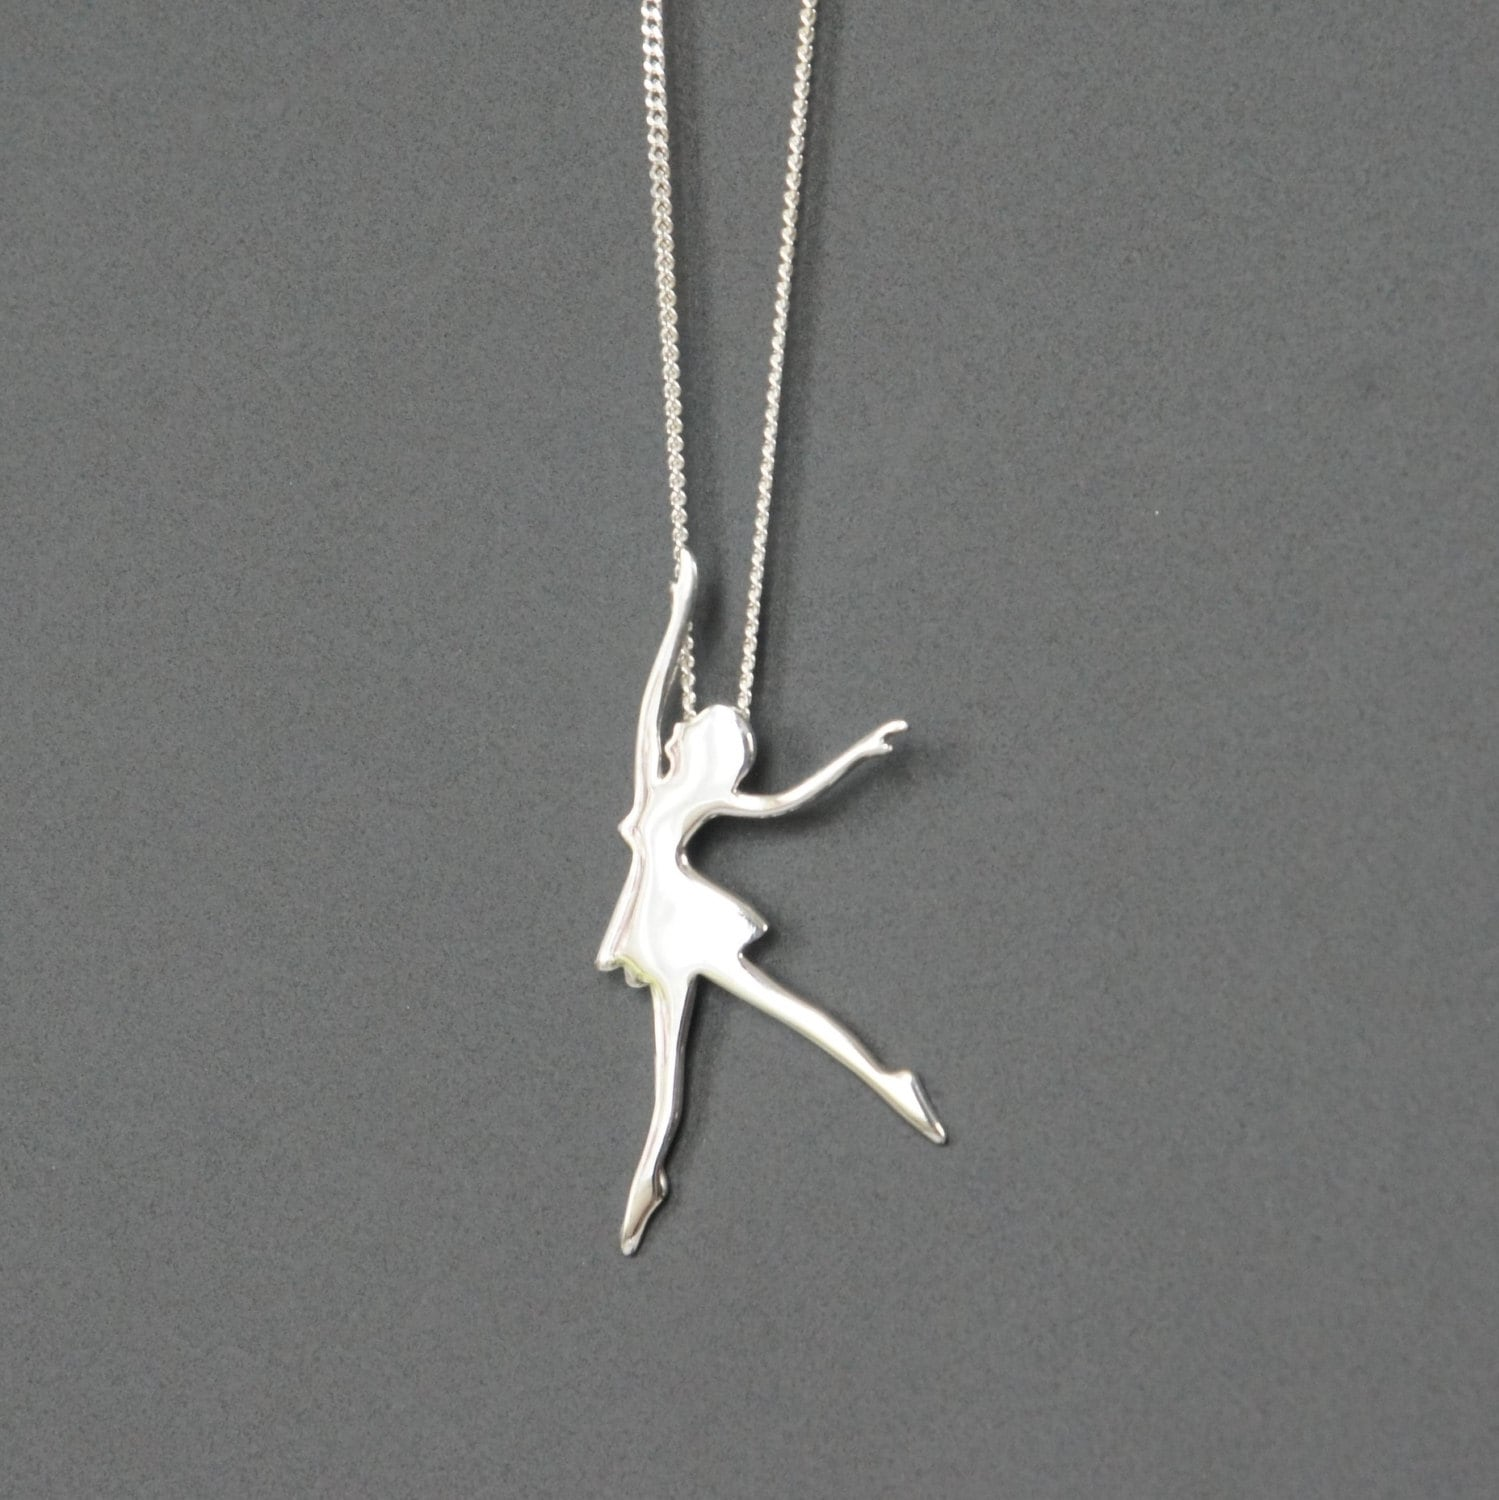 Vintage 925 Sterling Chain Ballerina Pendant Necklace Moving Pendant Made in Italy Gift for Her Gift for Girl Birthday Costume Jewelry